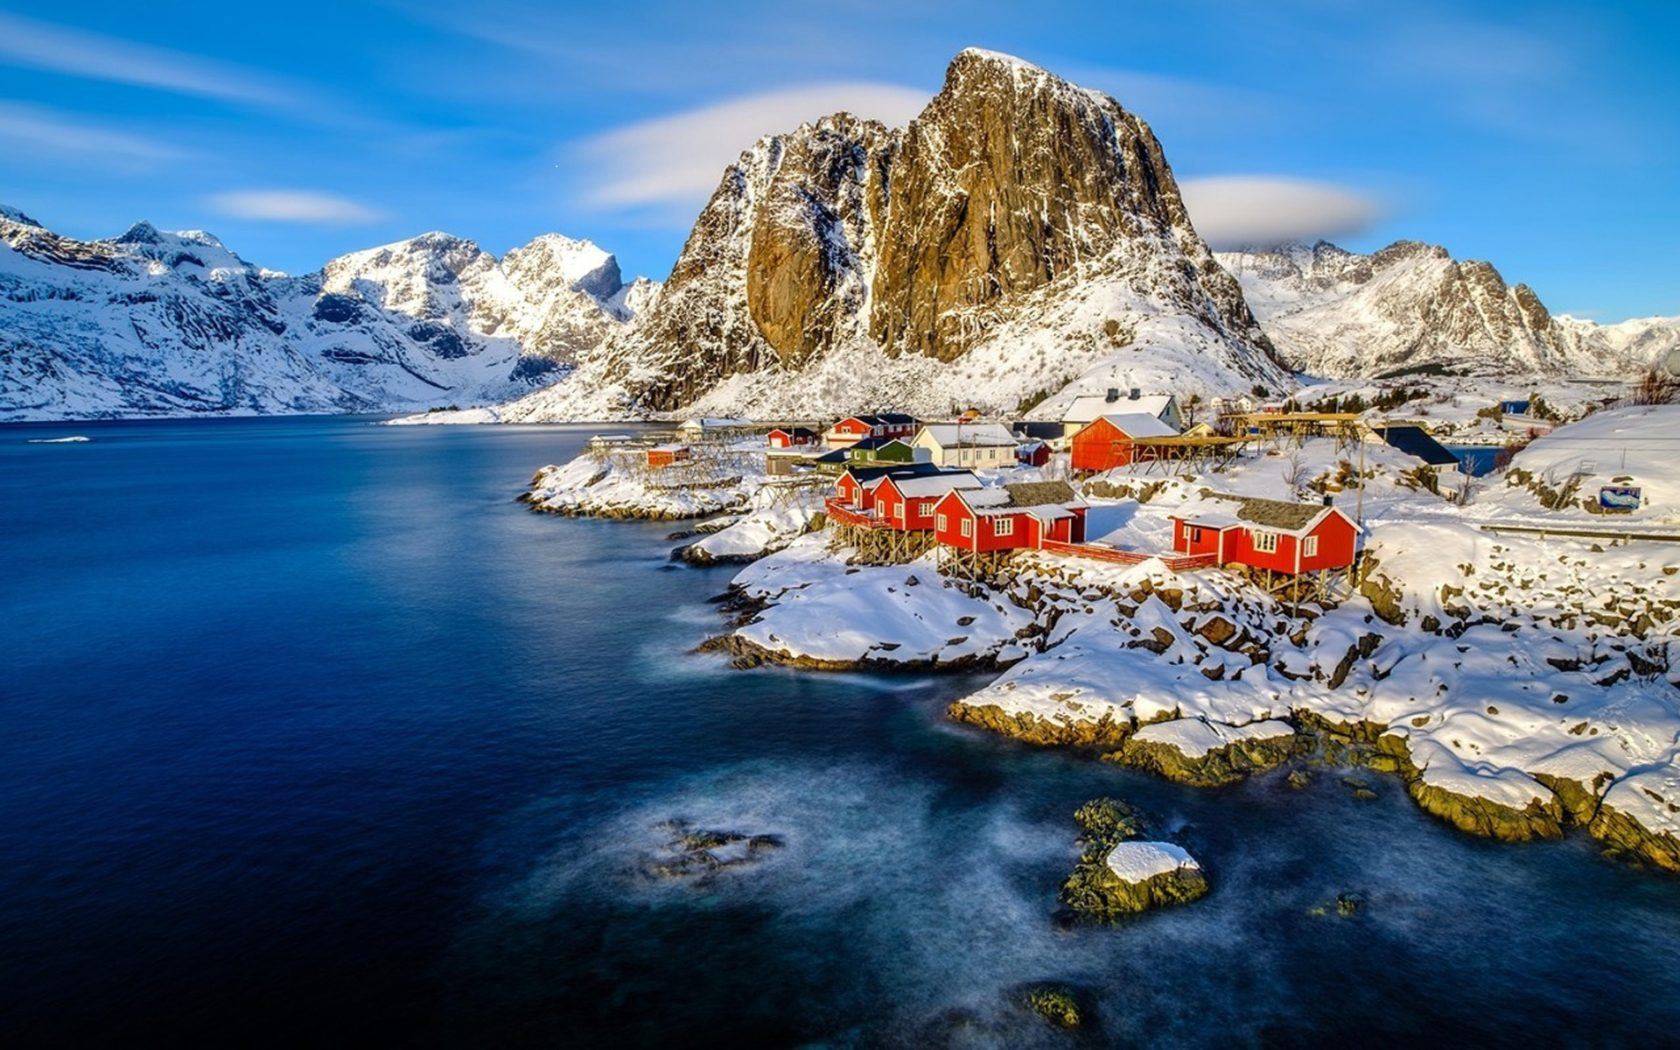 Winter Wallpaper For Iphone 4 Winter Landscape Norway Lofoten Islands Under Snow Cover